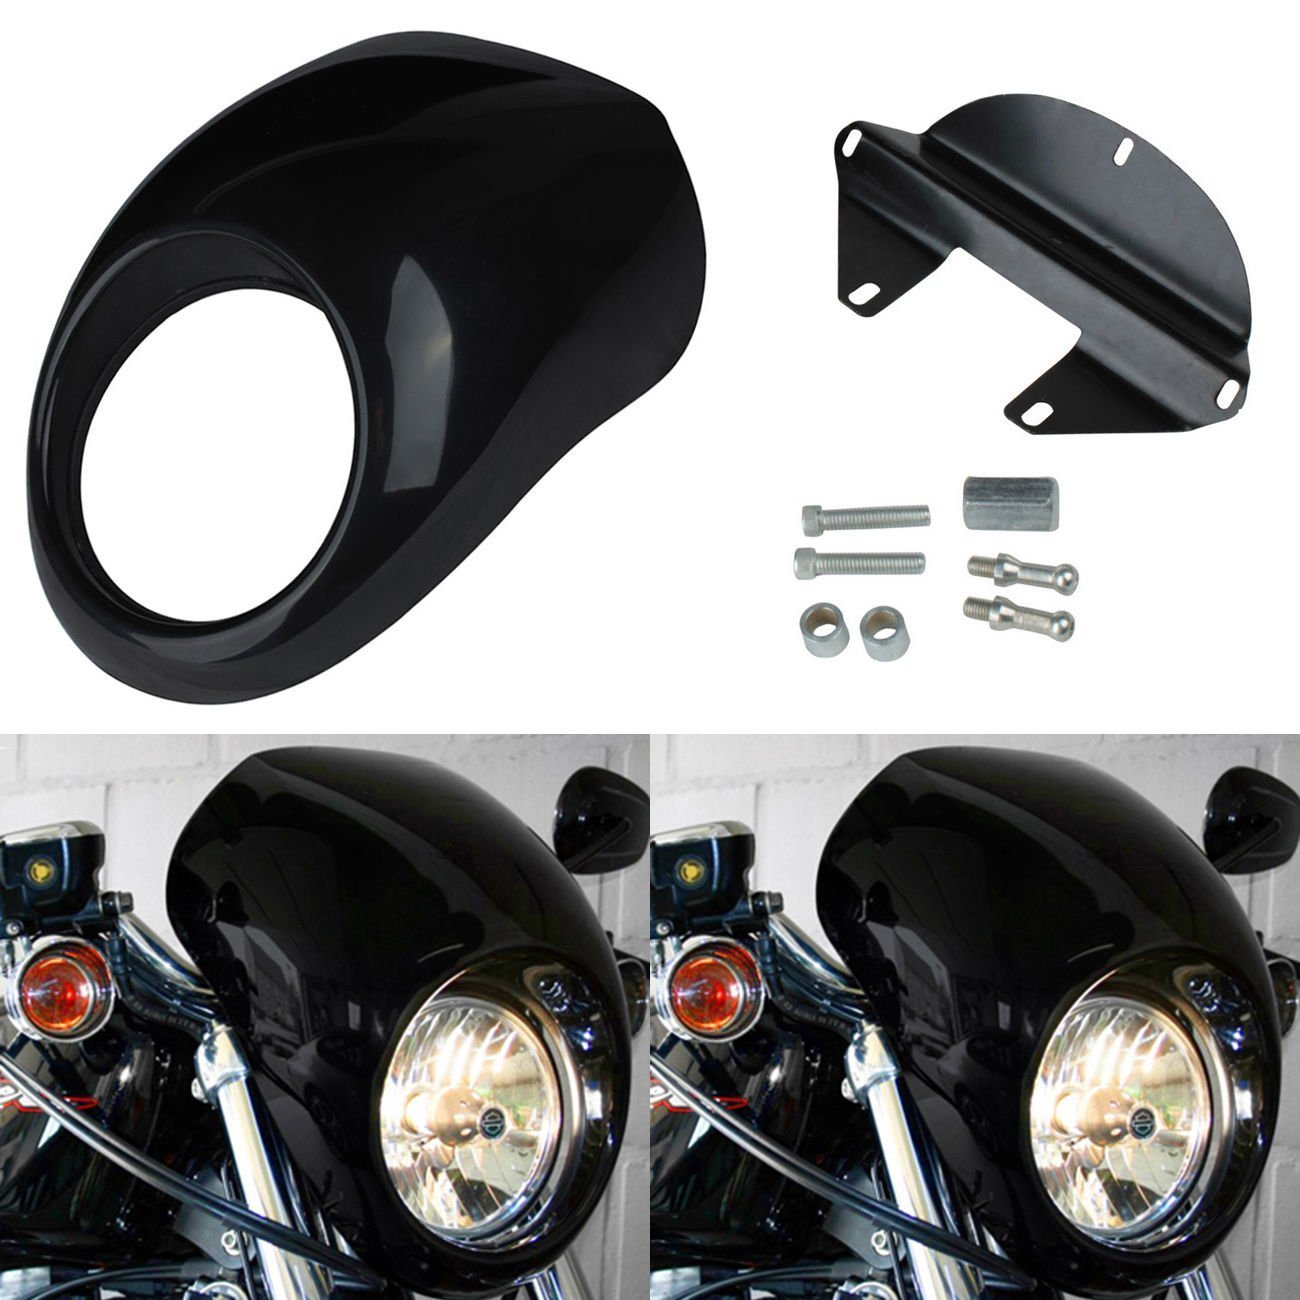 Ambienceo Front Headlight Fairing Cowl Mask Trim Cover for Harley Sportster Dyna Glide FX XL